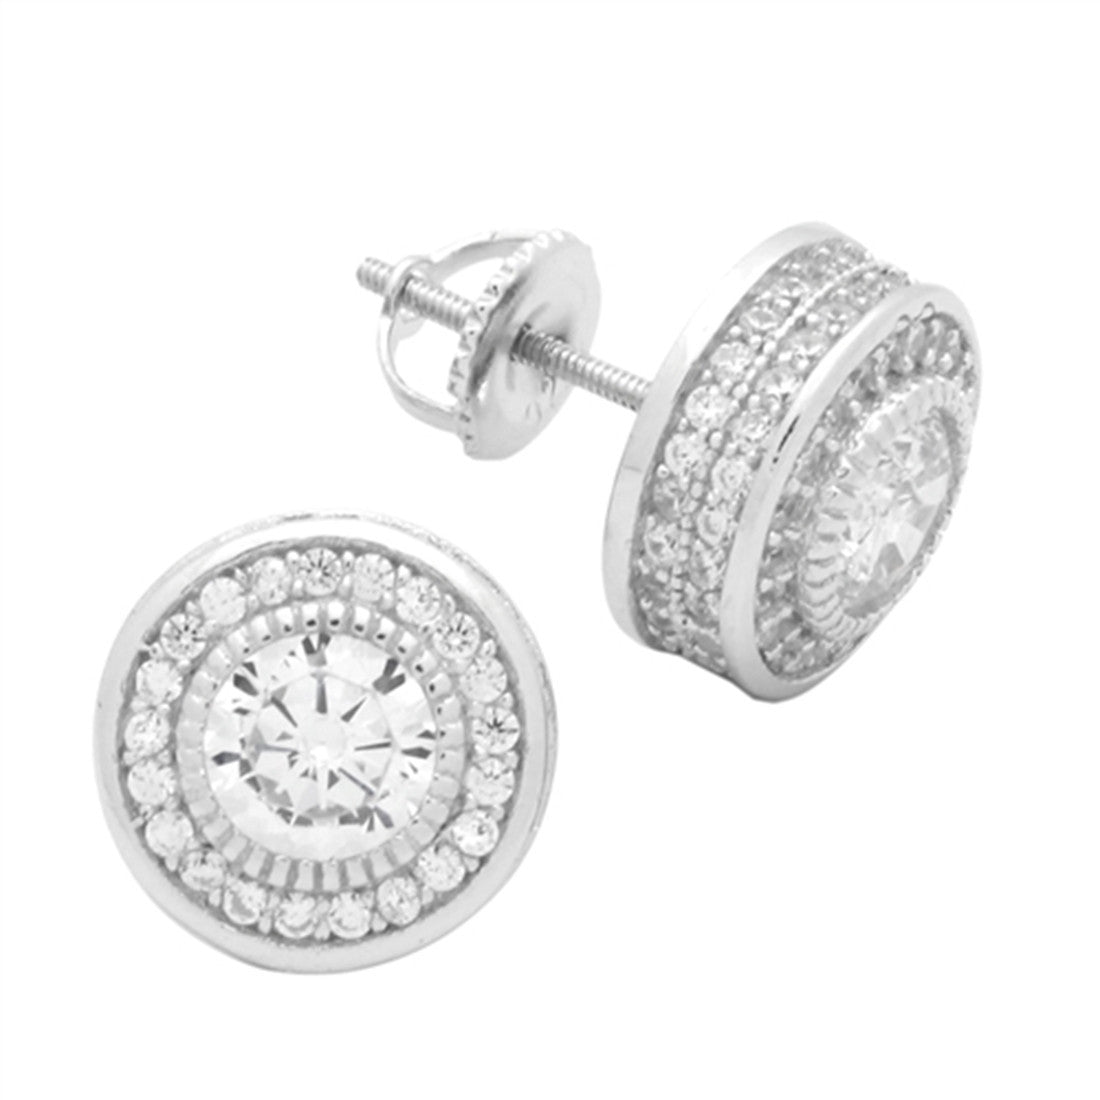 4a1db3177 ... Stud Earring Round Cubic Zirconia 925 Sterling Silver Screw Back Men  Women. Tap to expand